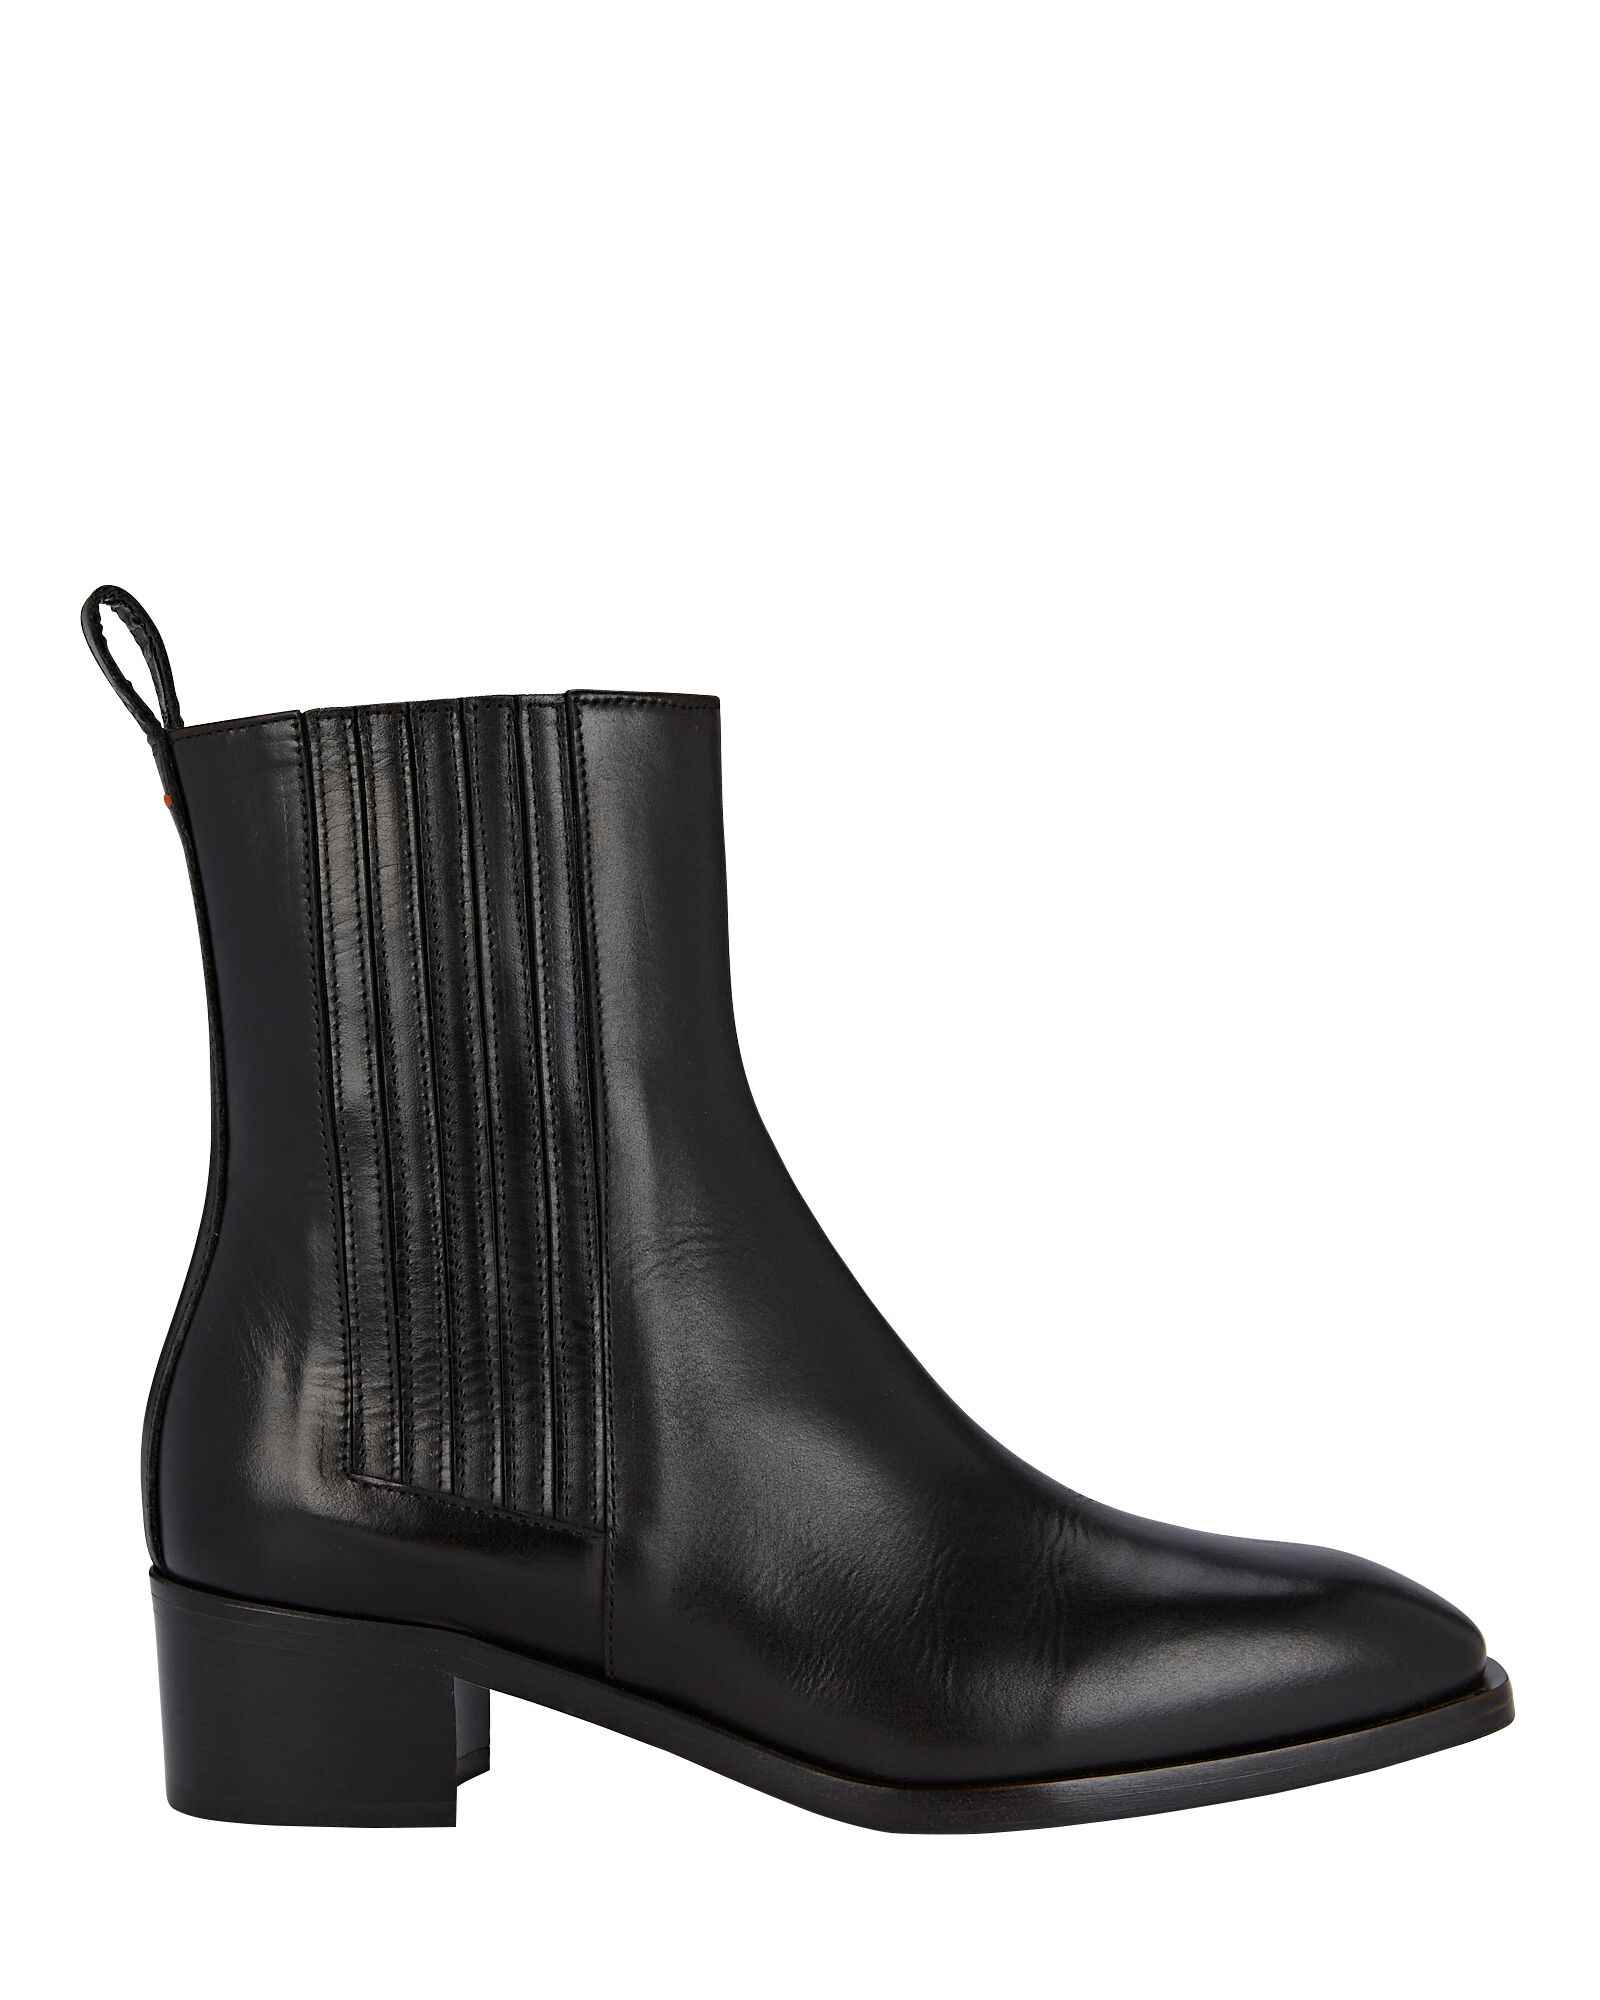 Neil Leather Ankle Boots, BLACK, hi-res